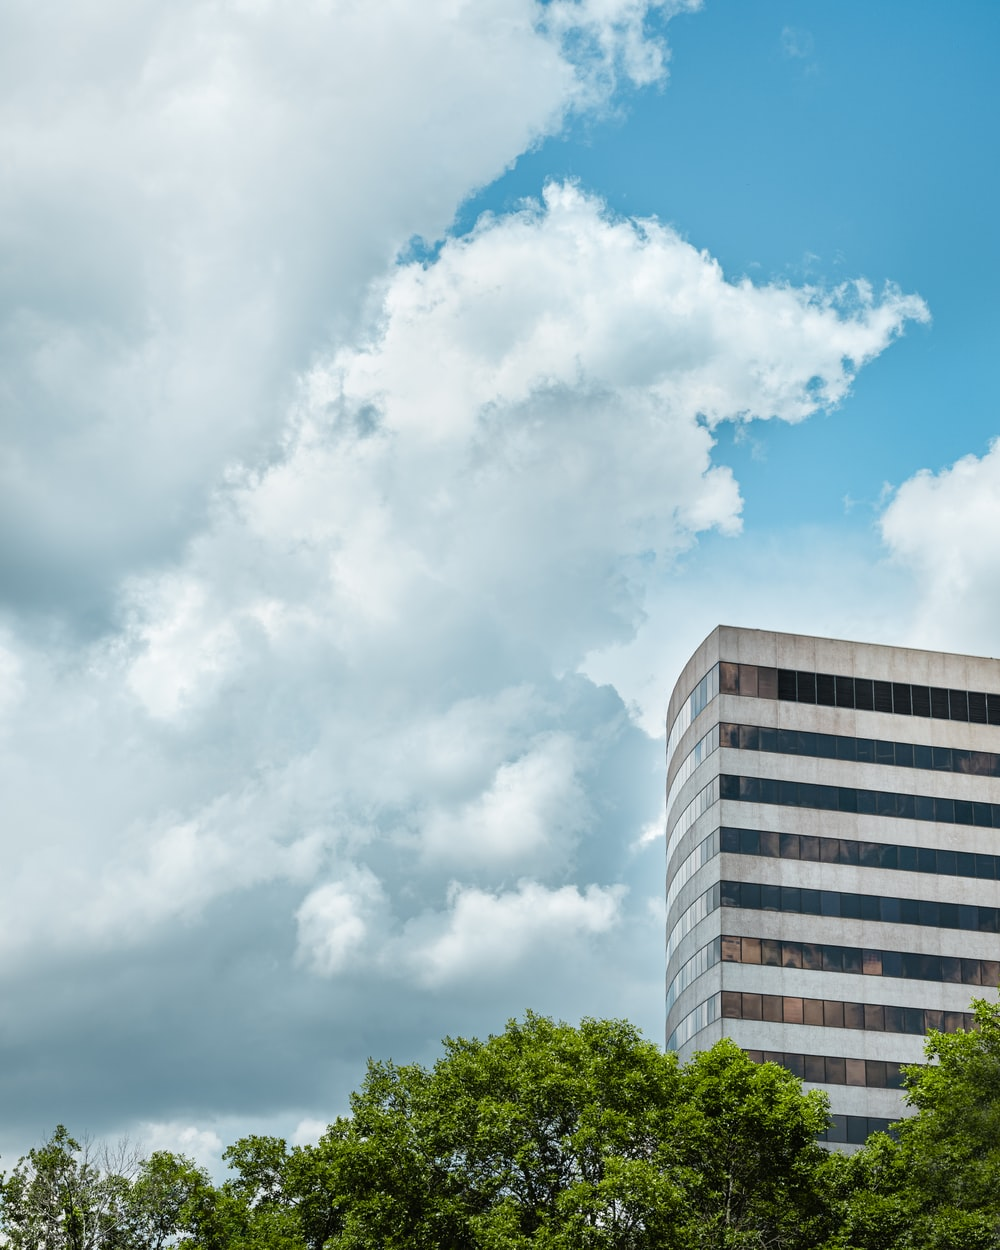 white concrete multi-storey building under cloudy sky during daytime